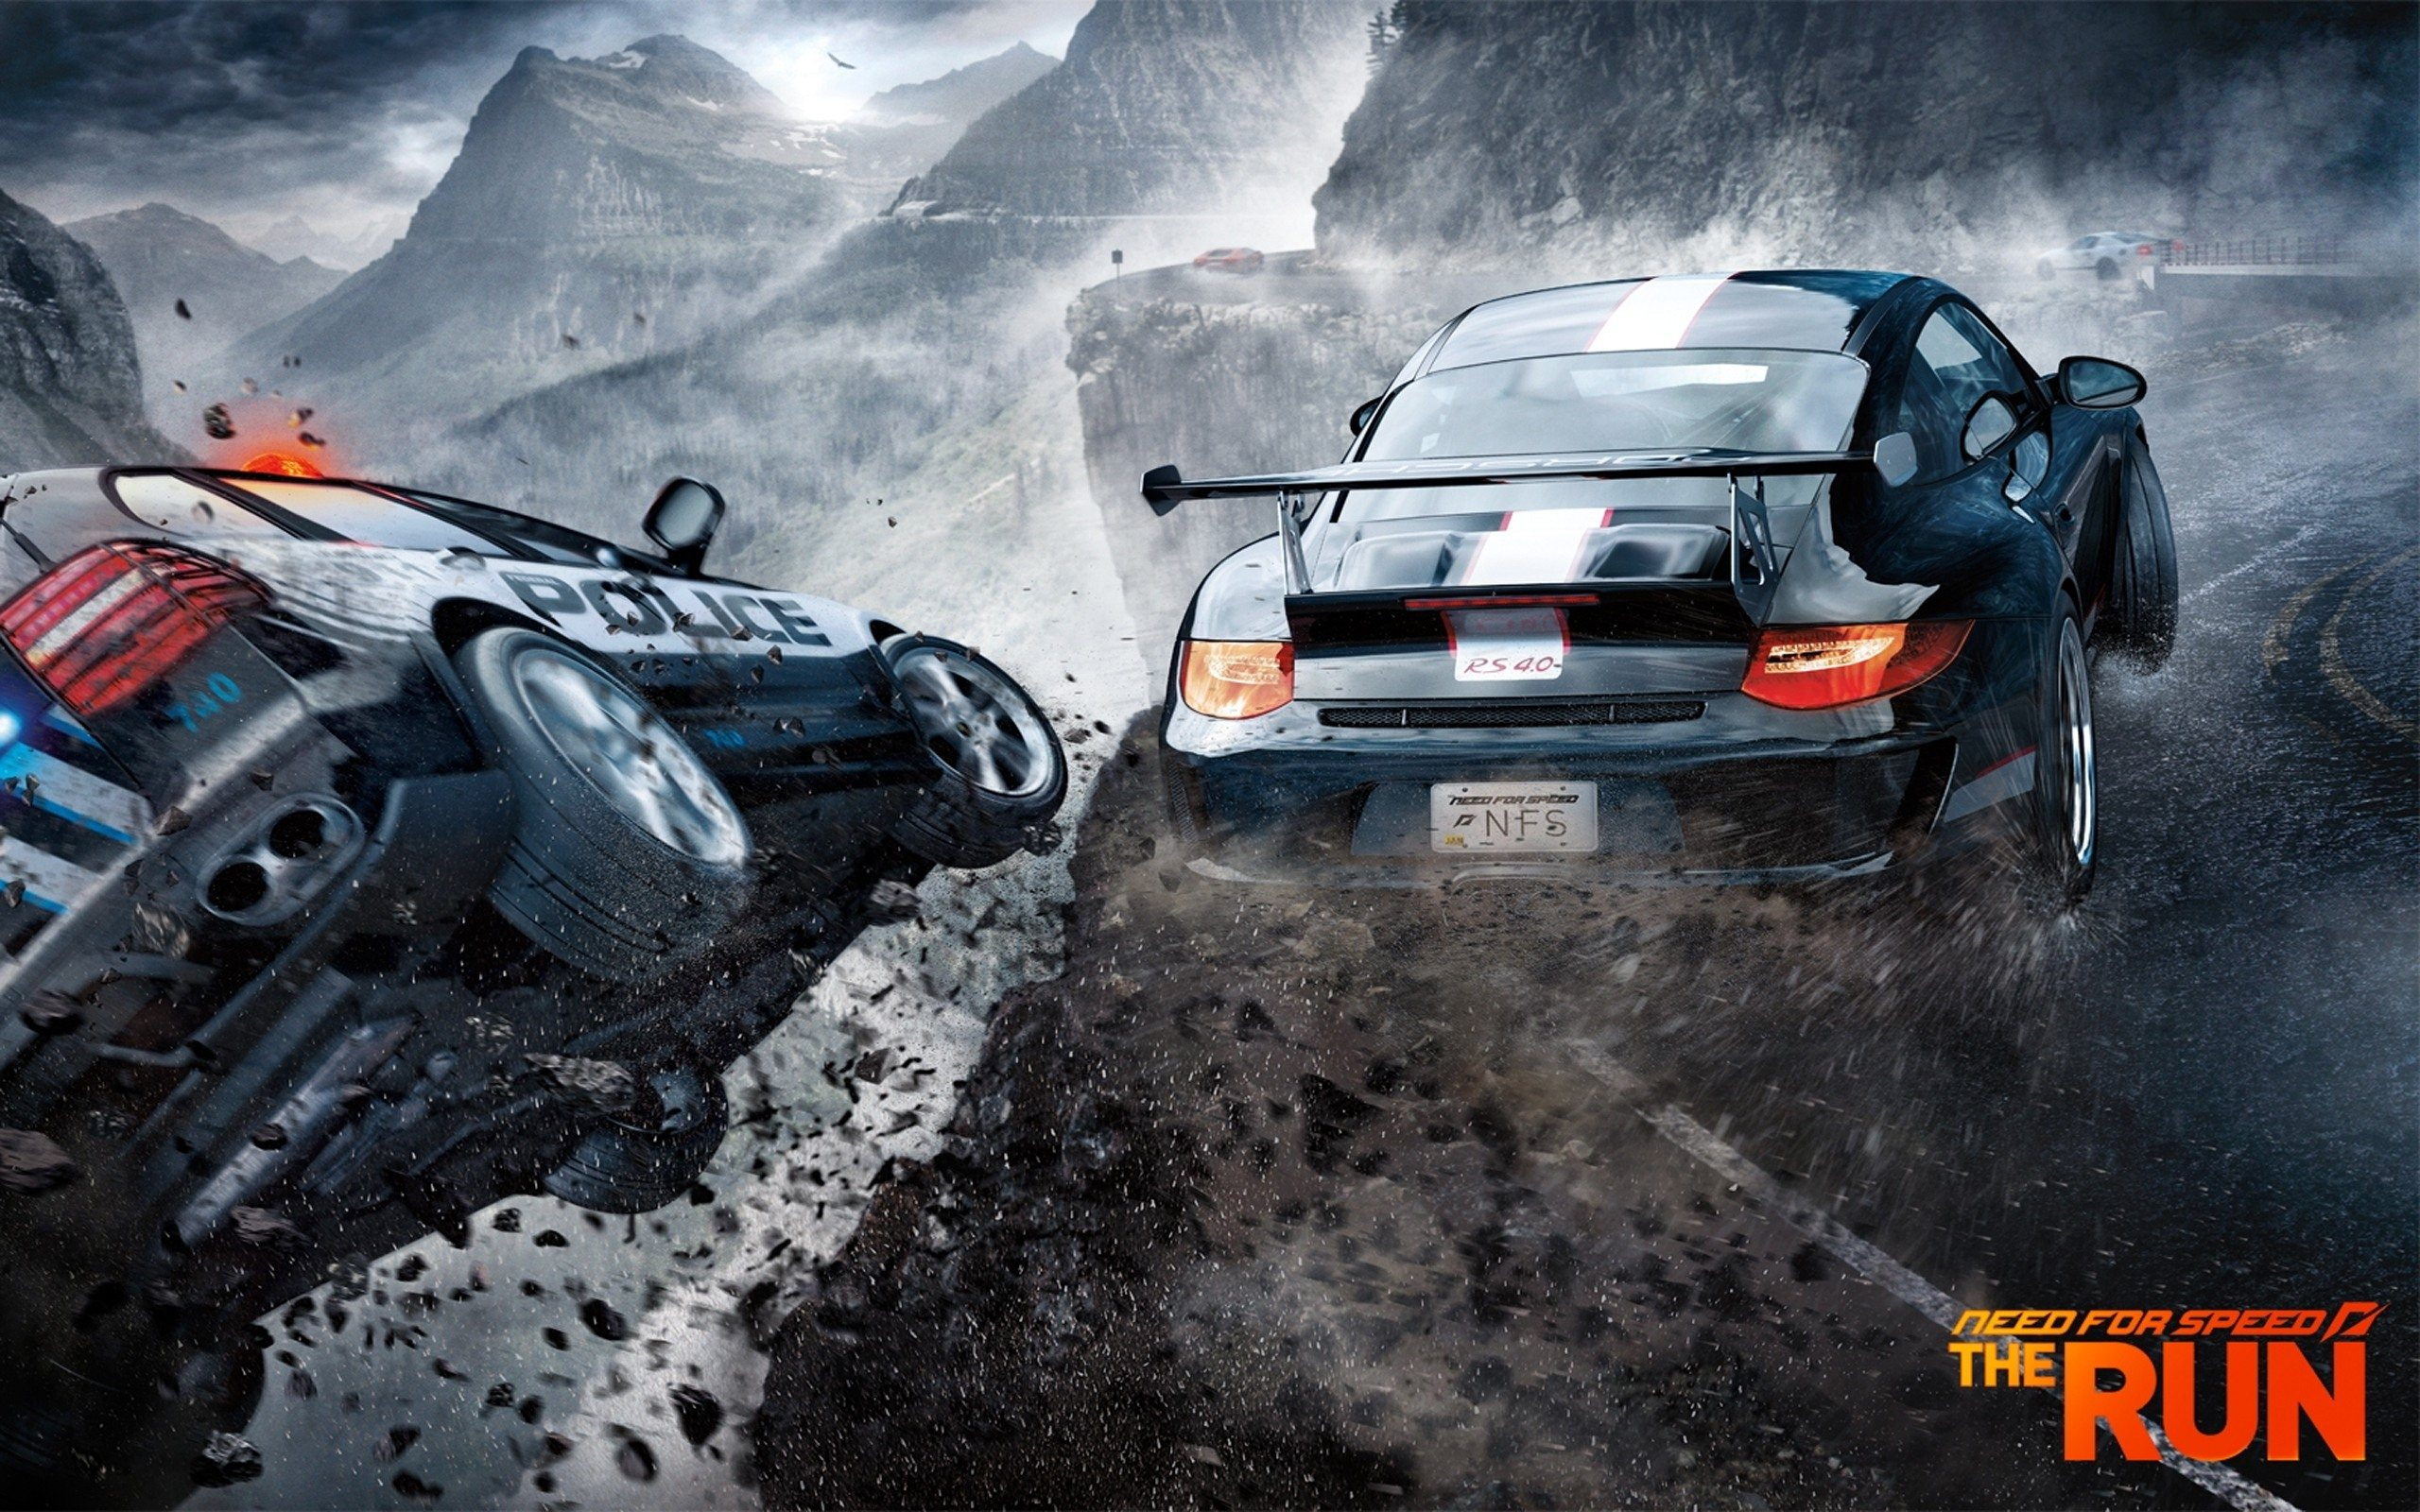 Need For Speed The Run HD Wallpapers and Background Images 2560x1600